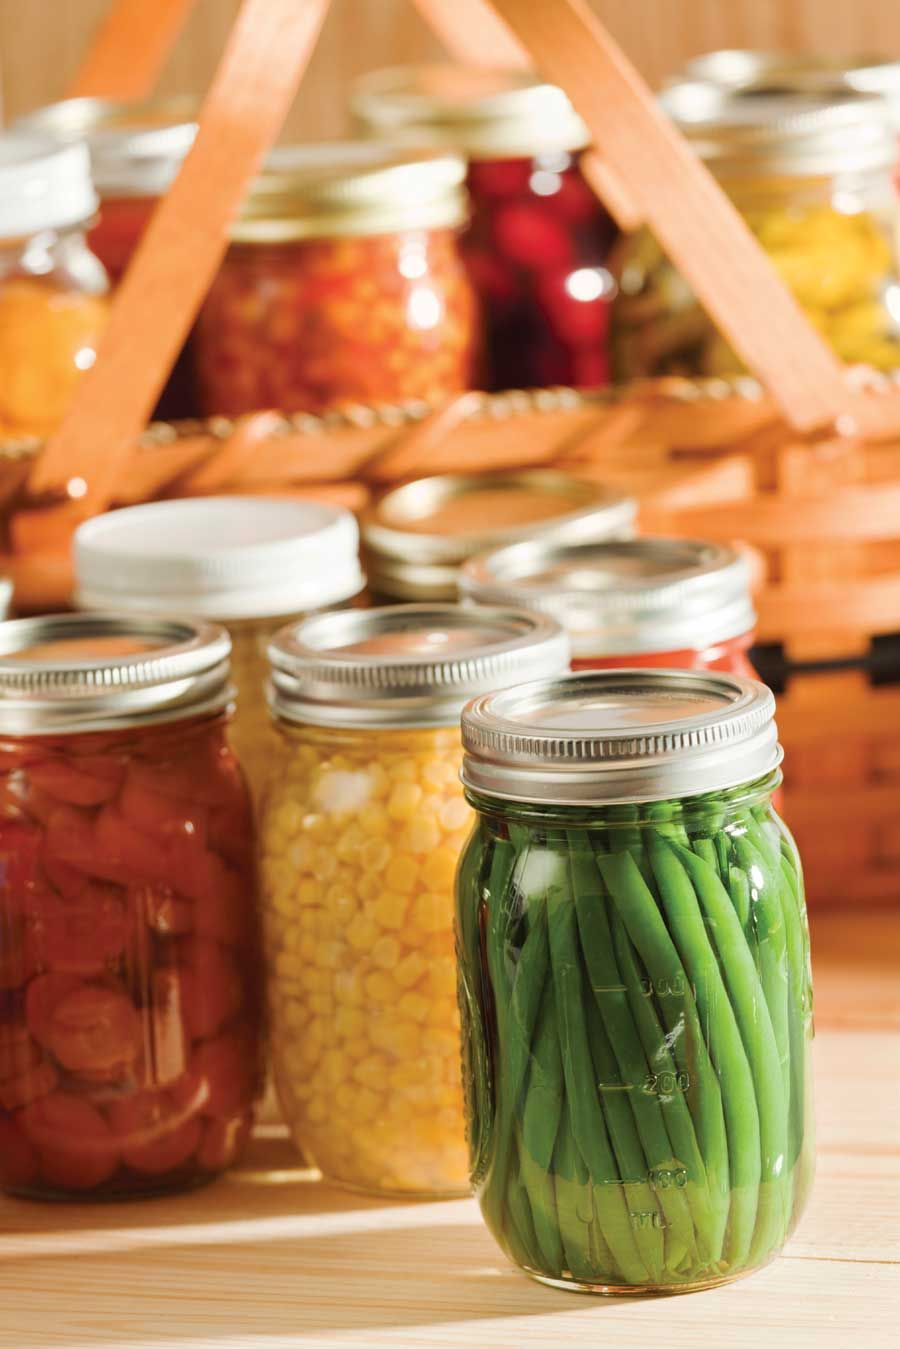 Beginners Guide to Canning Food | Canned Green Beans, Corn, and More